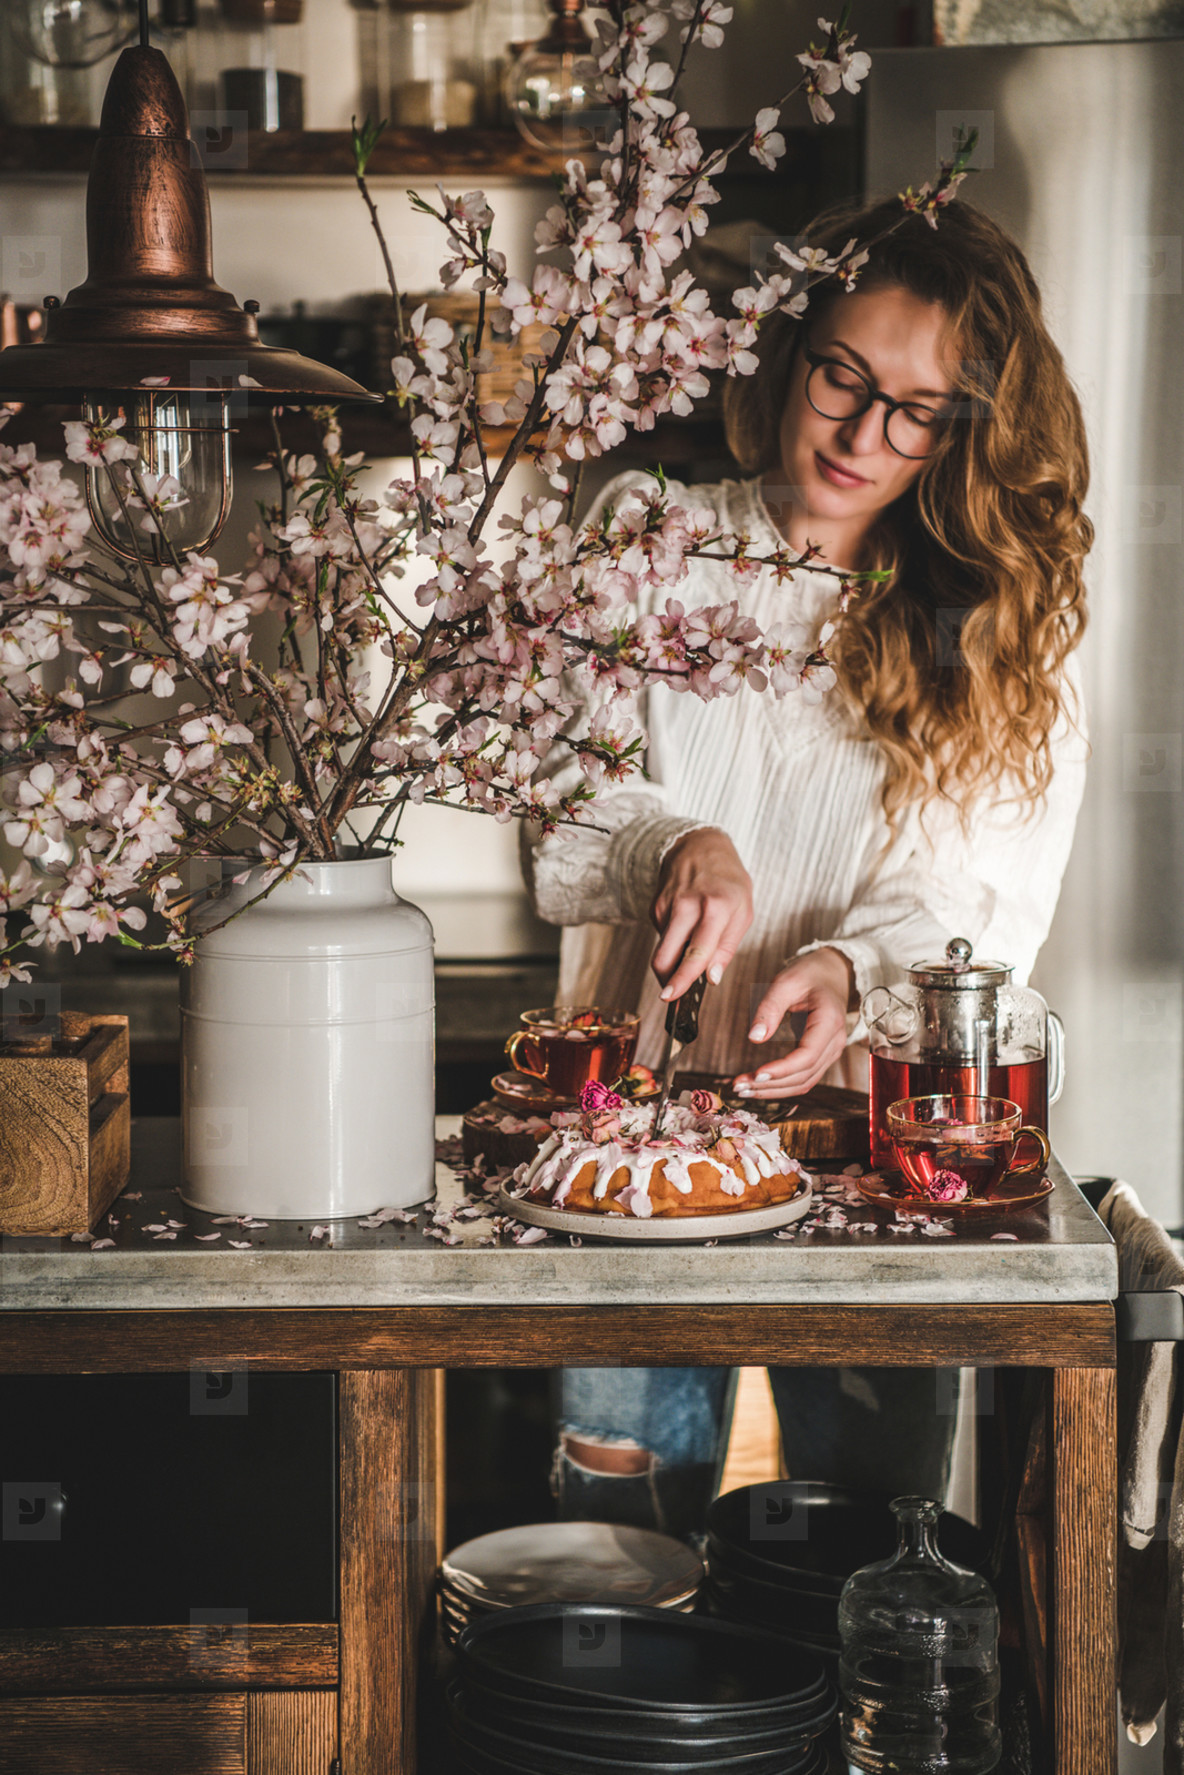 Woman cutting homemade gluten free bundt cake near blooming branches